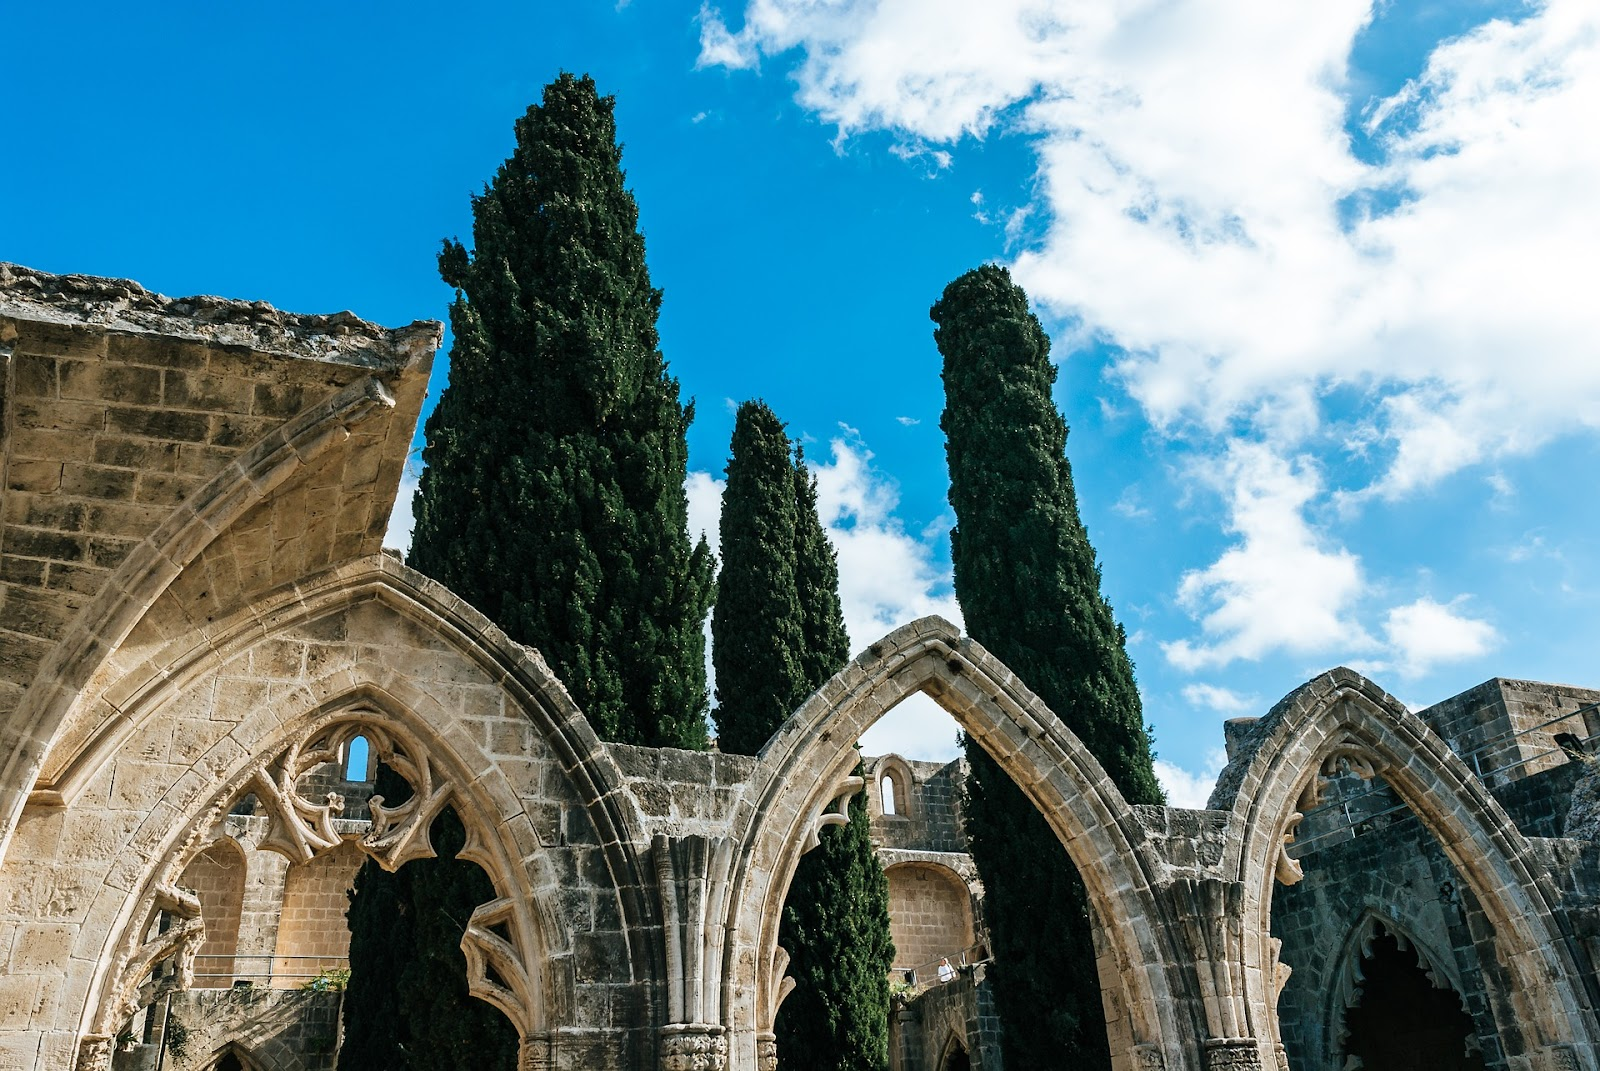 bellapais abbey monumental arches and ruins, three large trees in distance. sunny day in northern cyprus